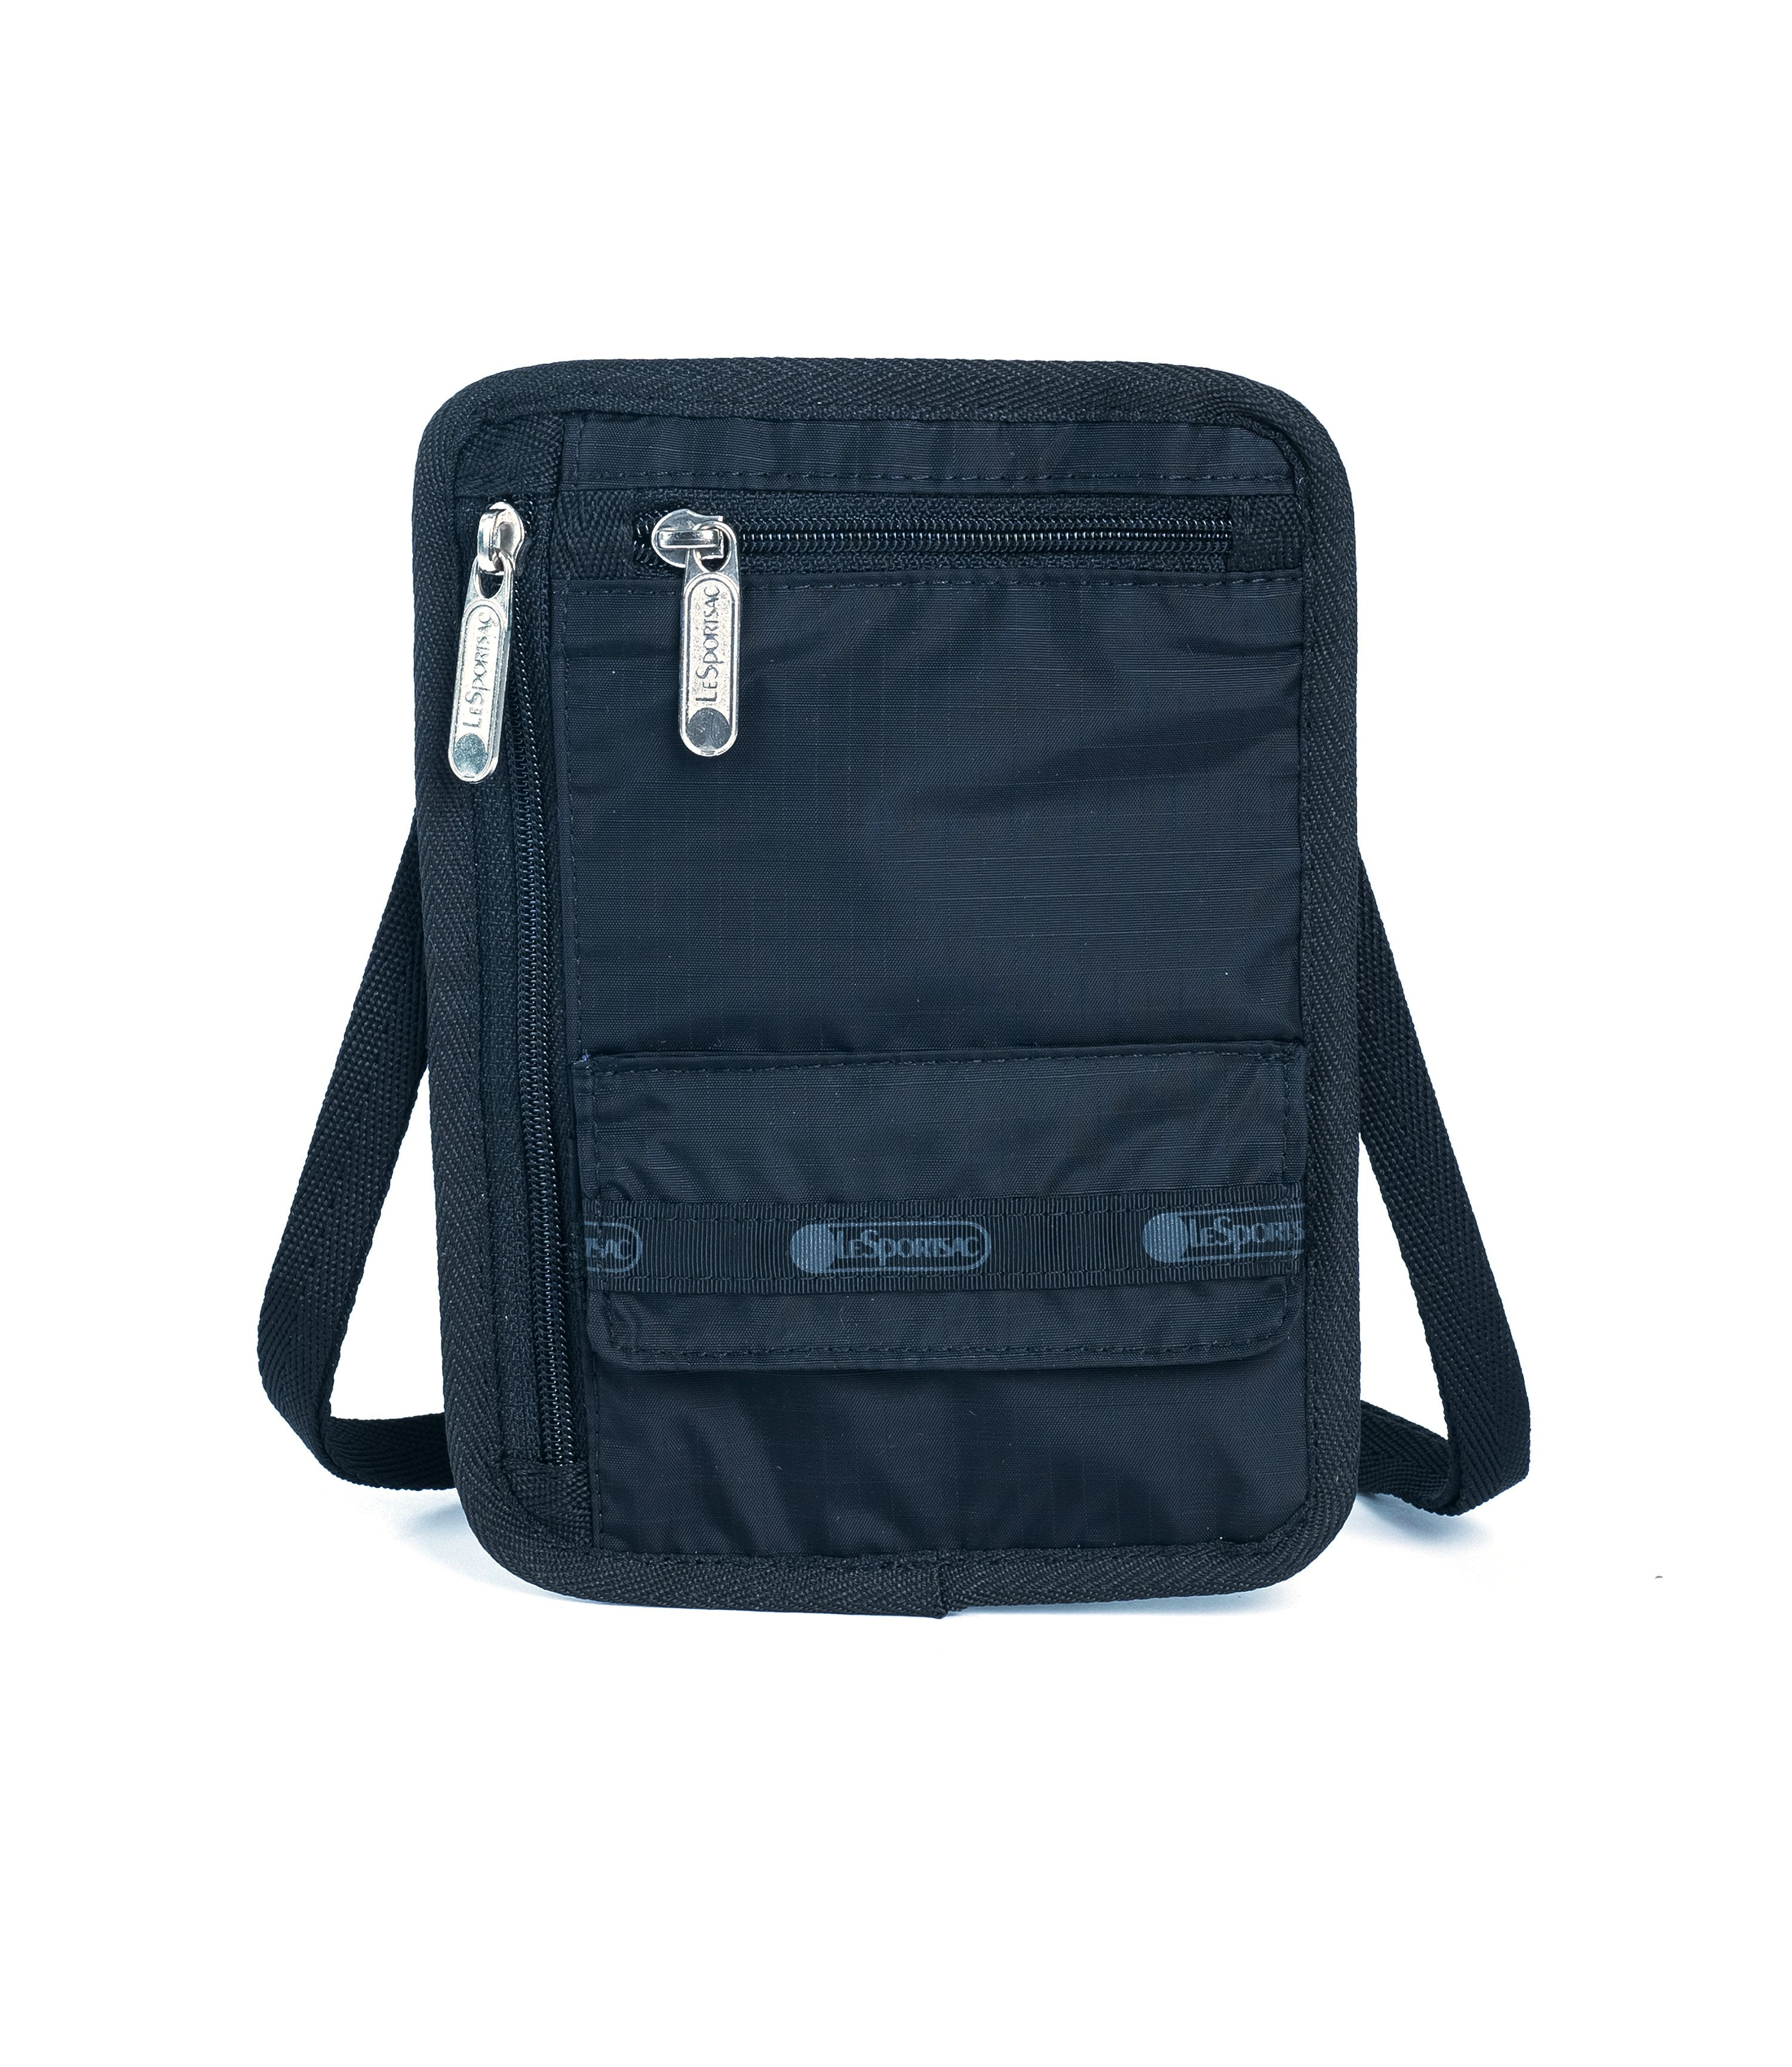 LeSportsac - Travel Pouch - Accessories - Heritage Dusk